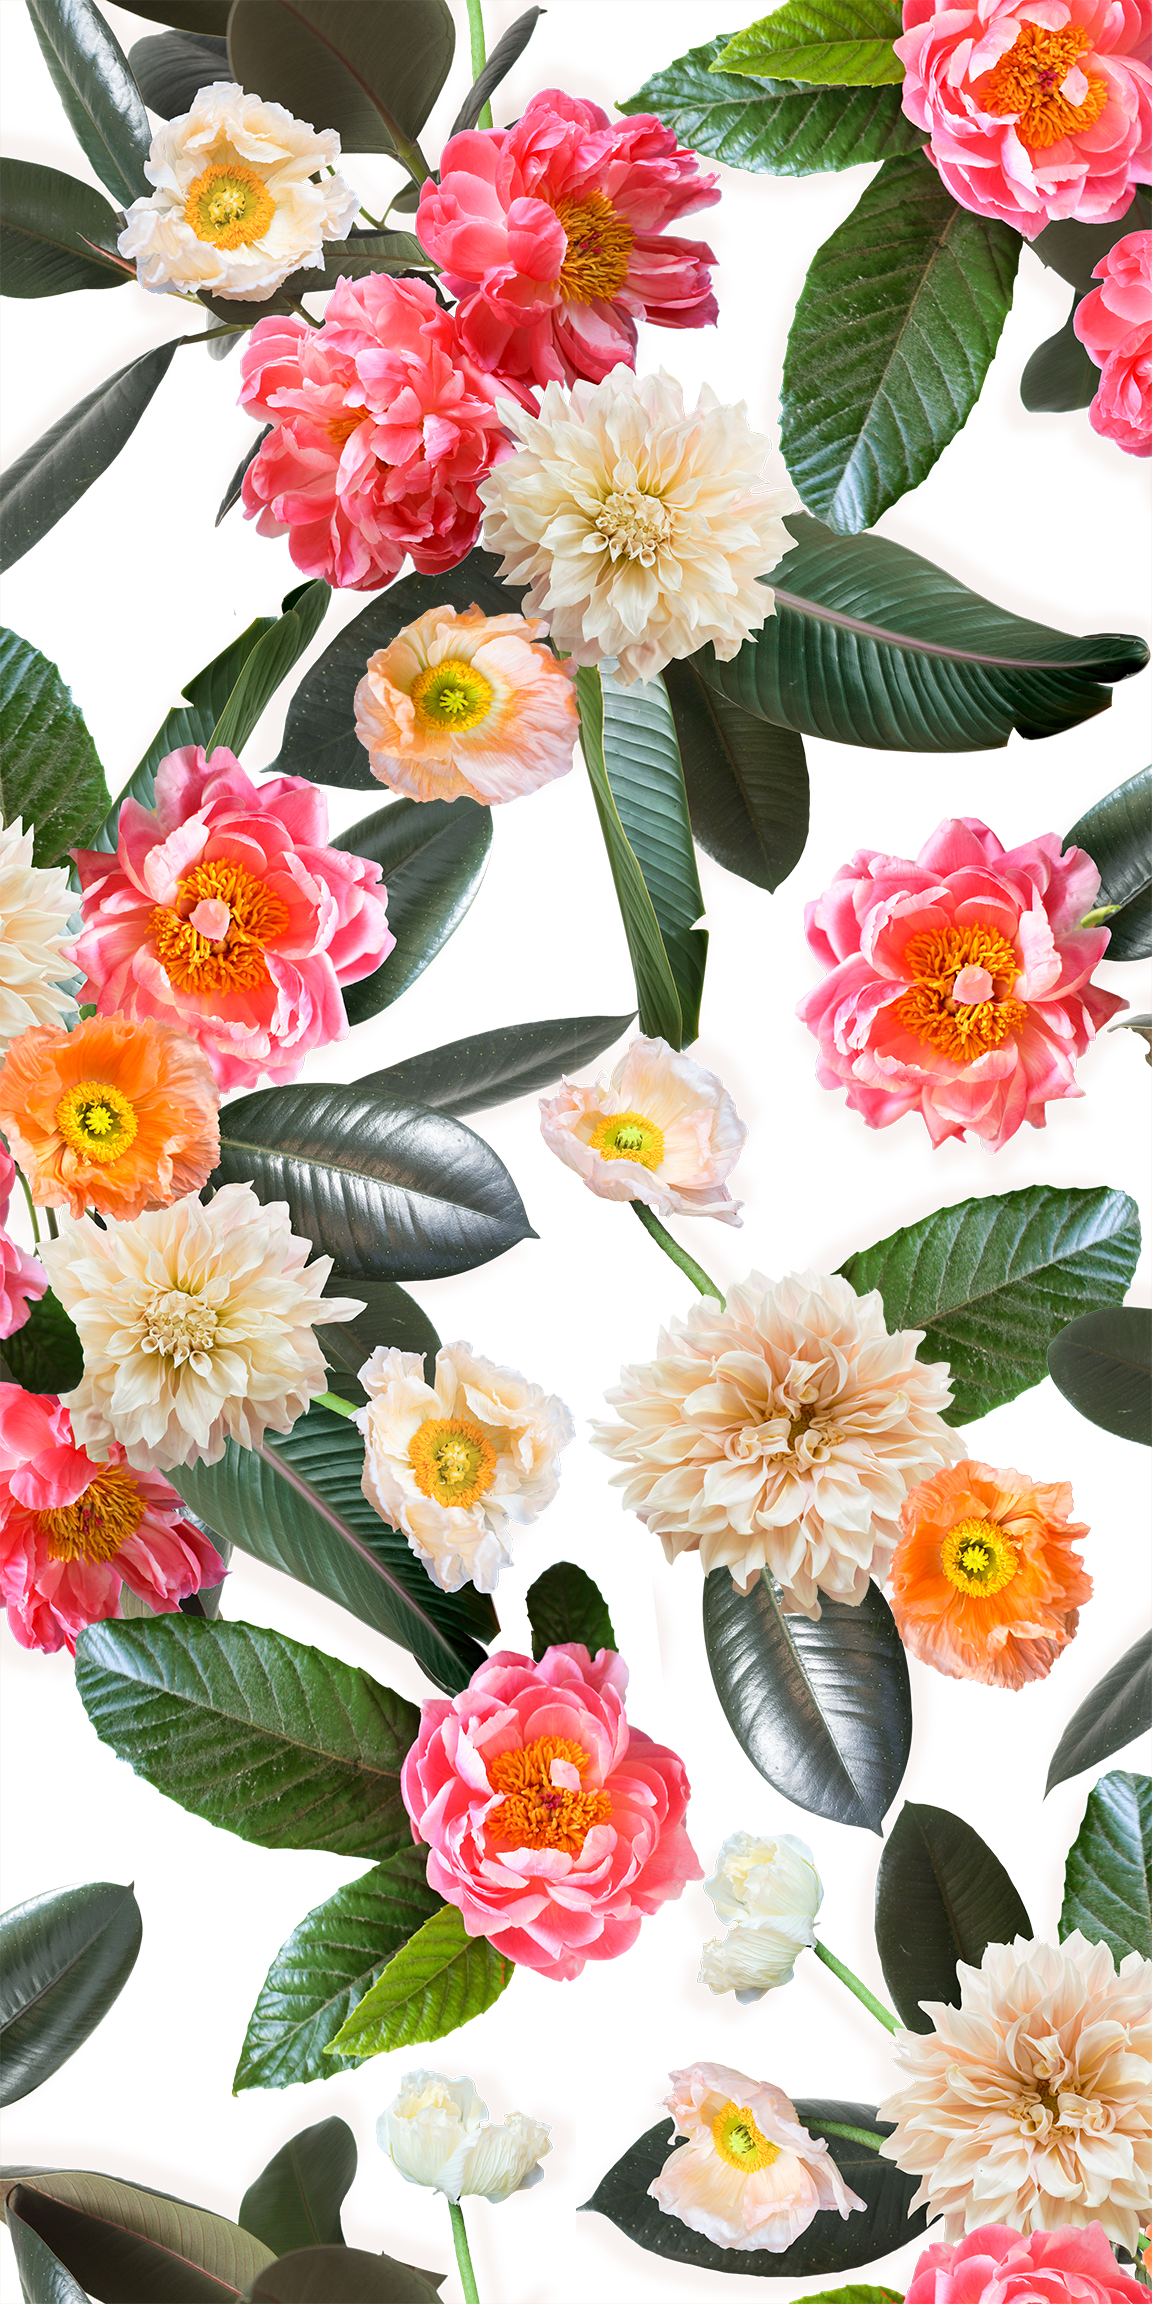 Flower Party Removable Fabric Wallpaper Peel And Stick